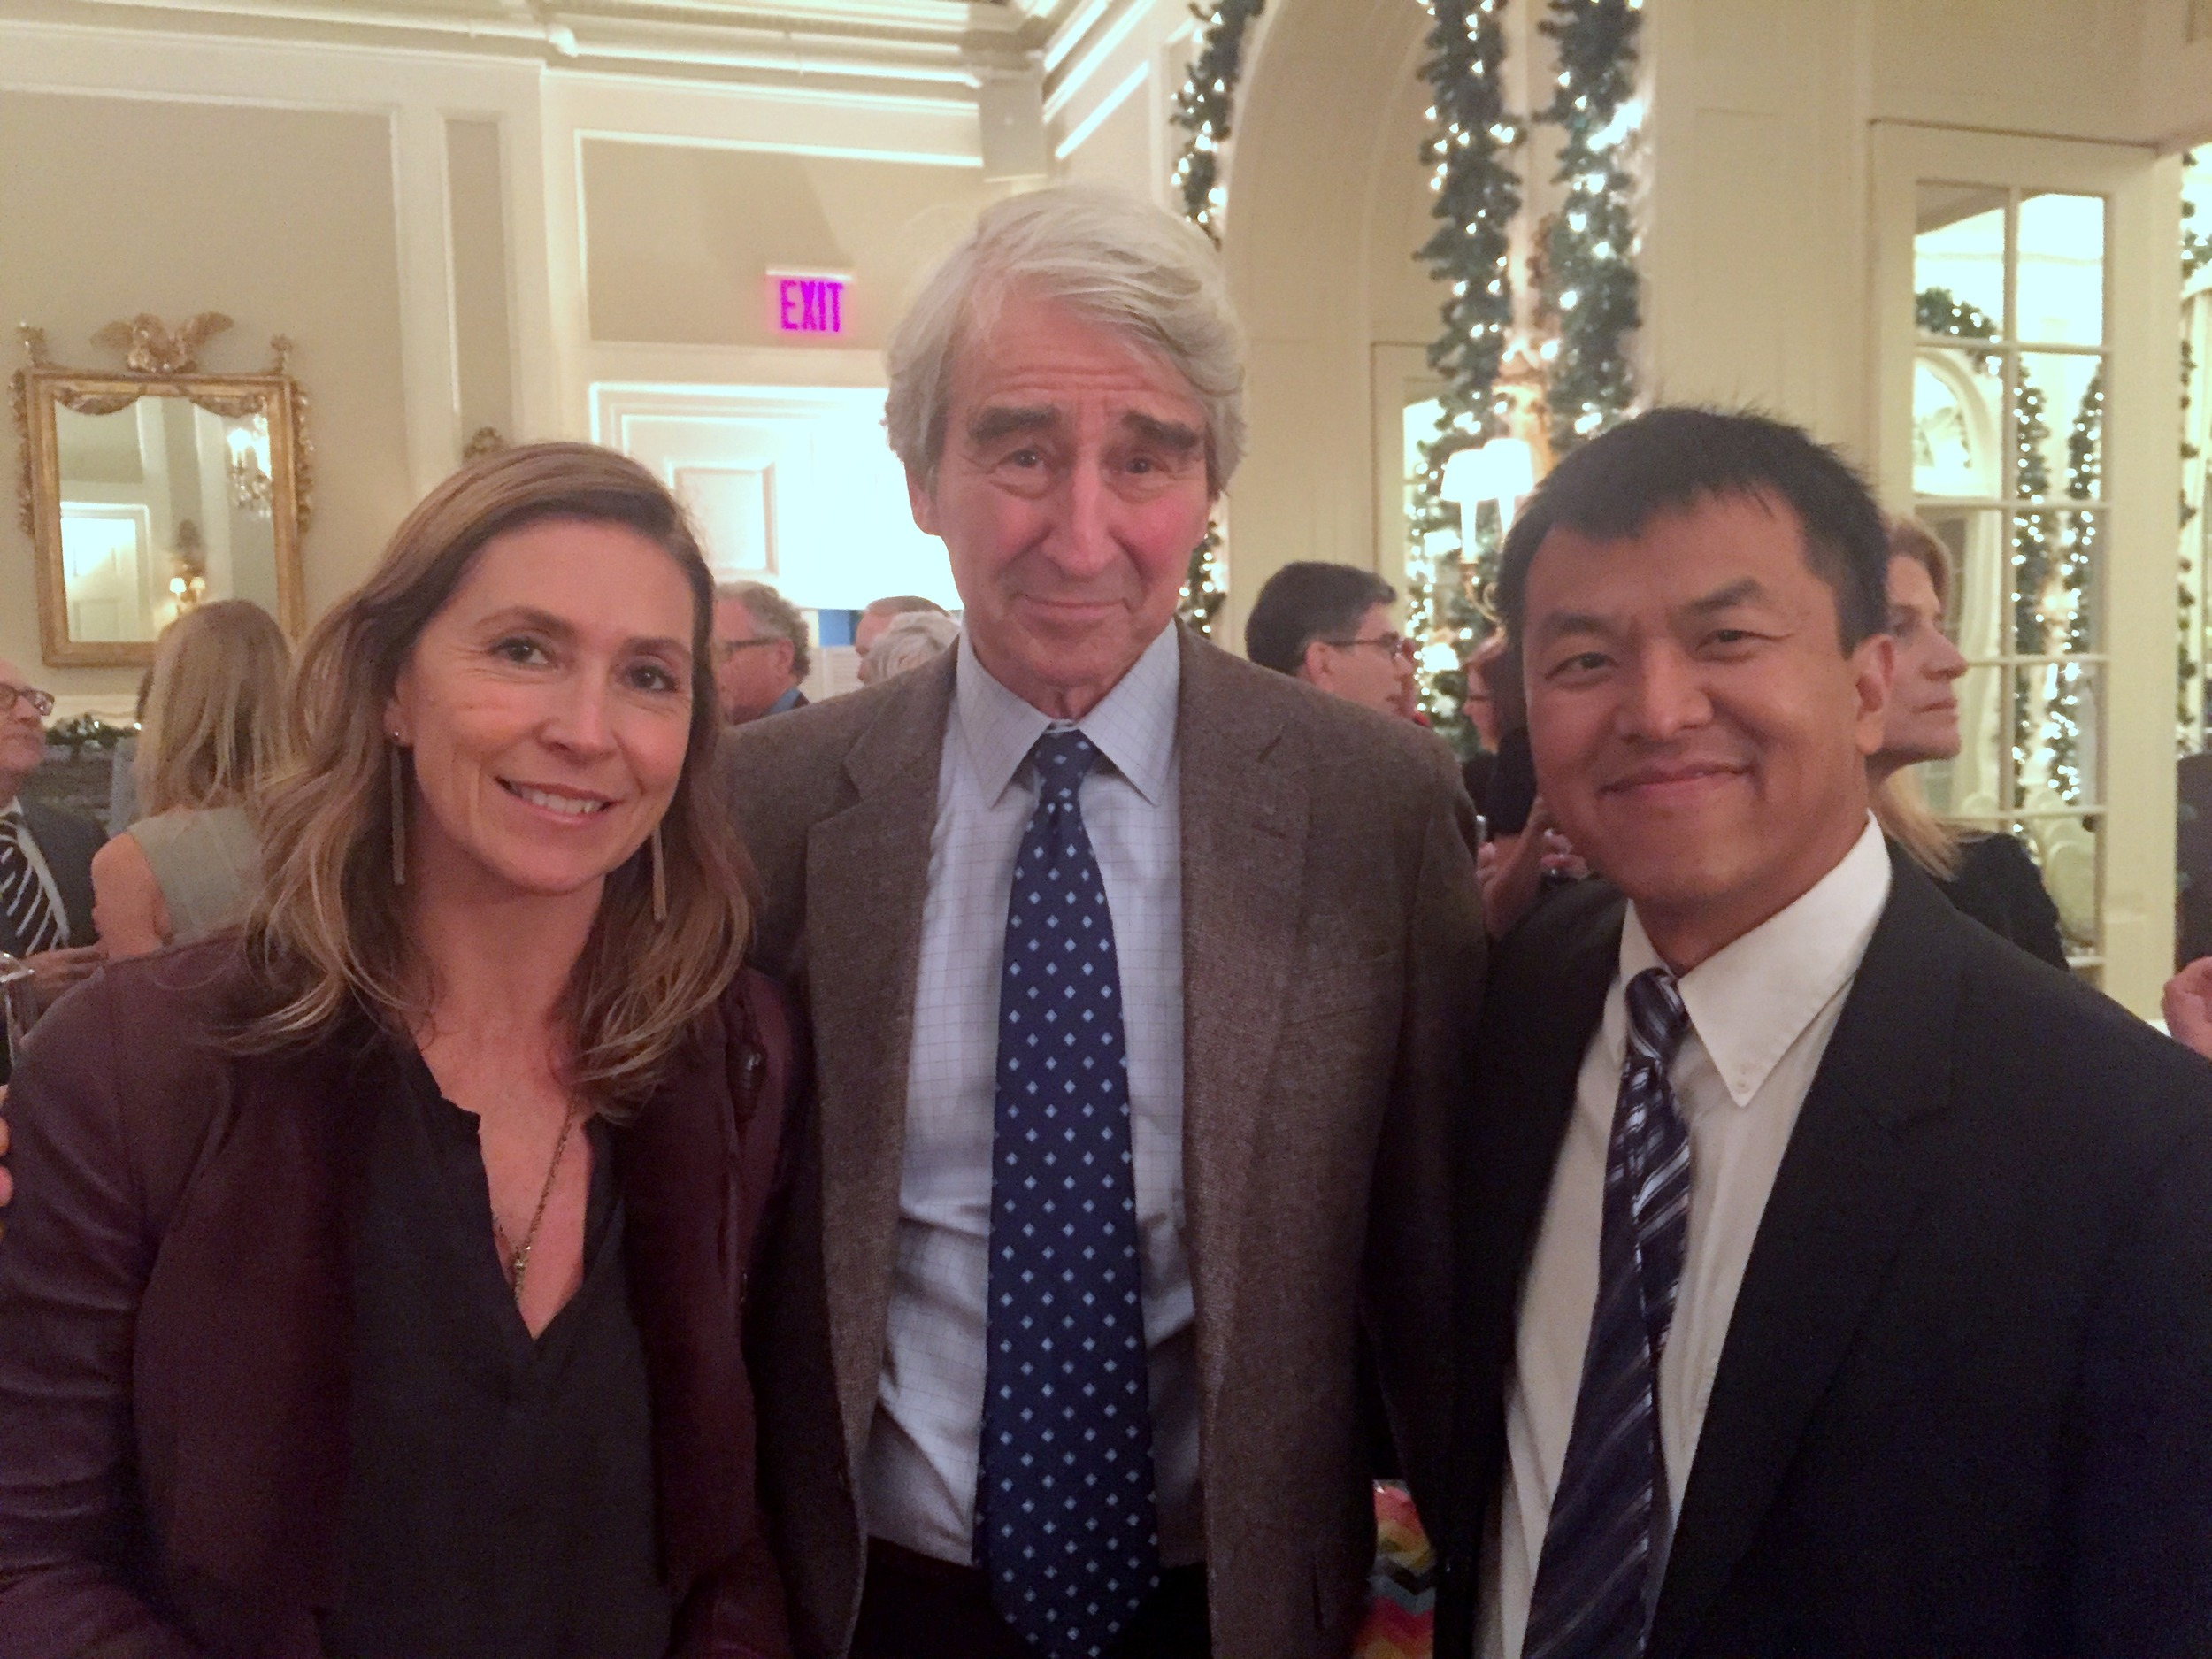 RI Board Members Natacha Weiss, Sam Waterston, and Sophal Ear.